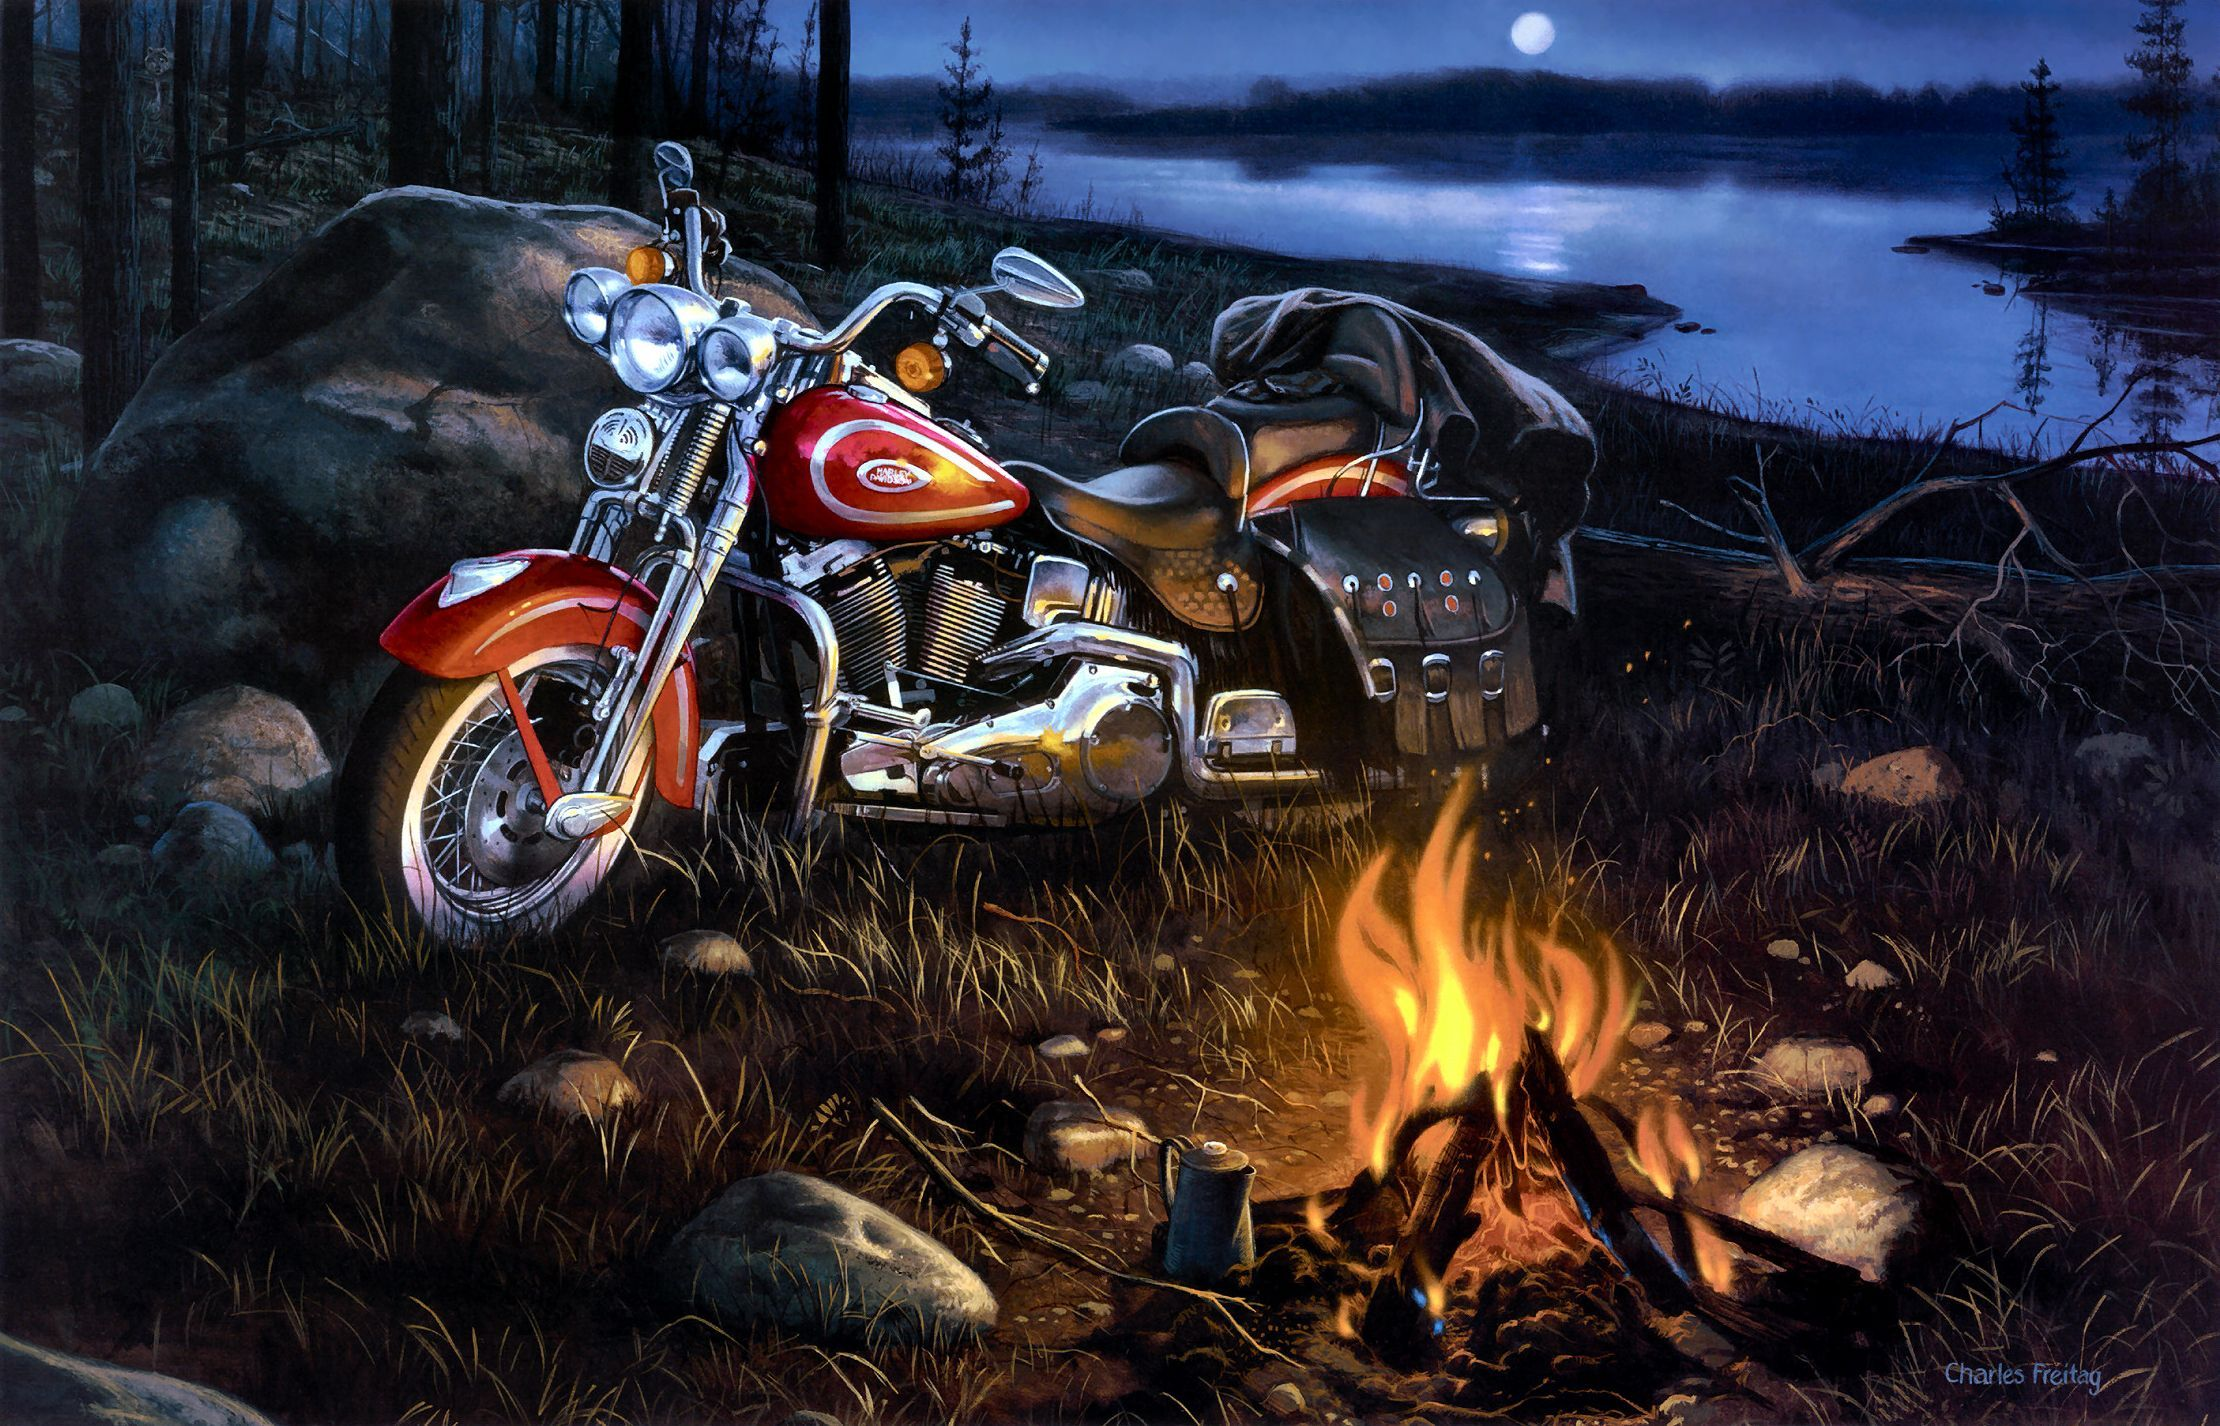 Desktop Harley Davidson Bike Images Wallpaper Download 3d Hd Fondo De Pantalla De Harley Davidson Cruces Pintadas Regalos Harley Davidson